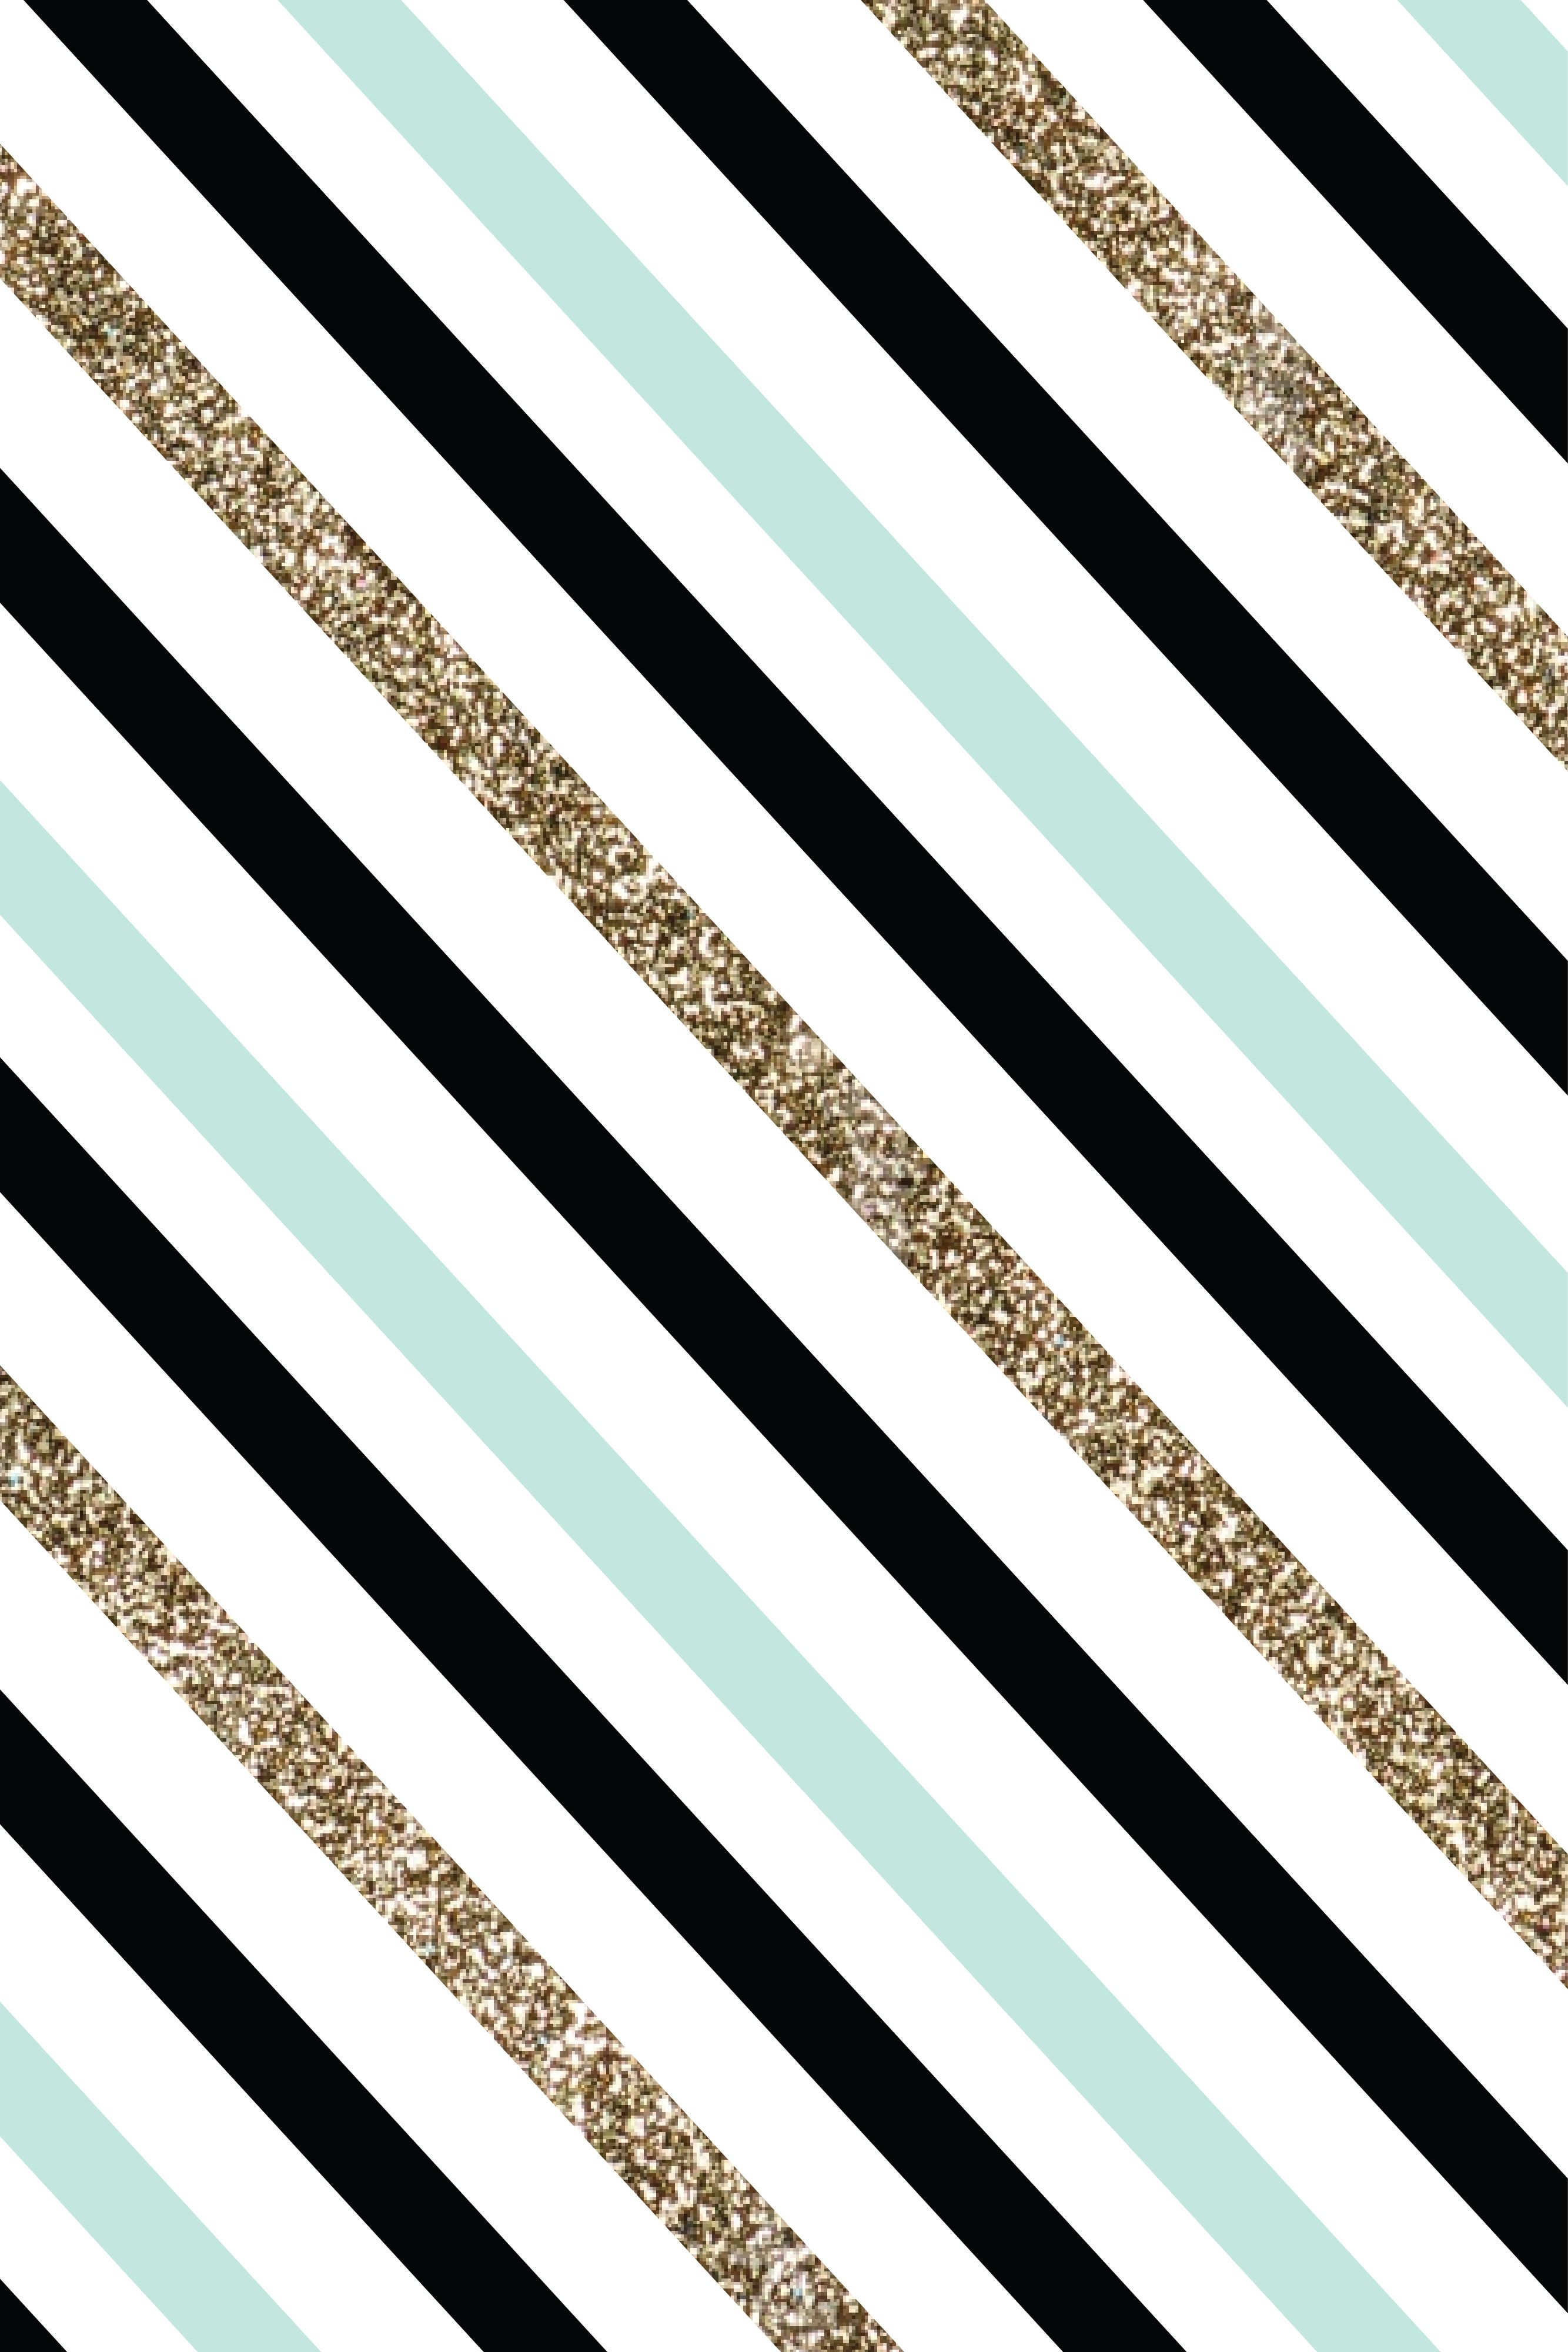 Iphone wallpapers tumblr chevron - Mint Black And Gold Stripes Find This Pin And More On I P H O N E W A L L P A P E R S